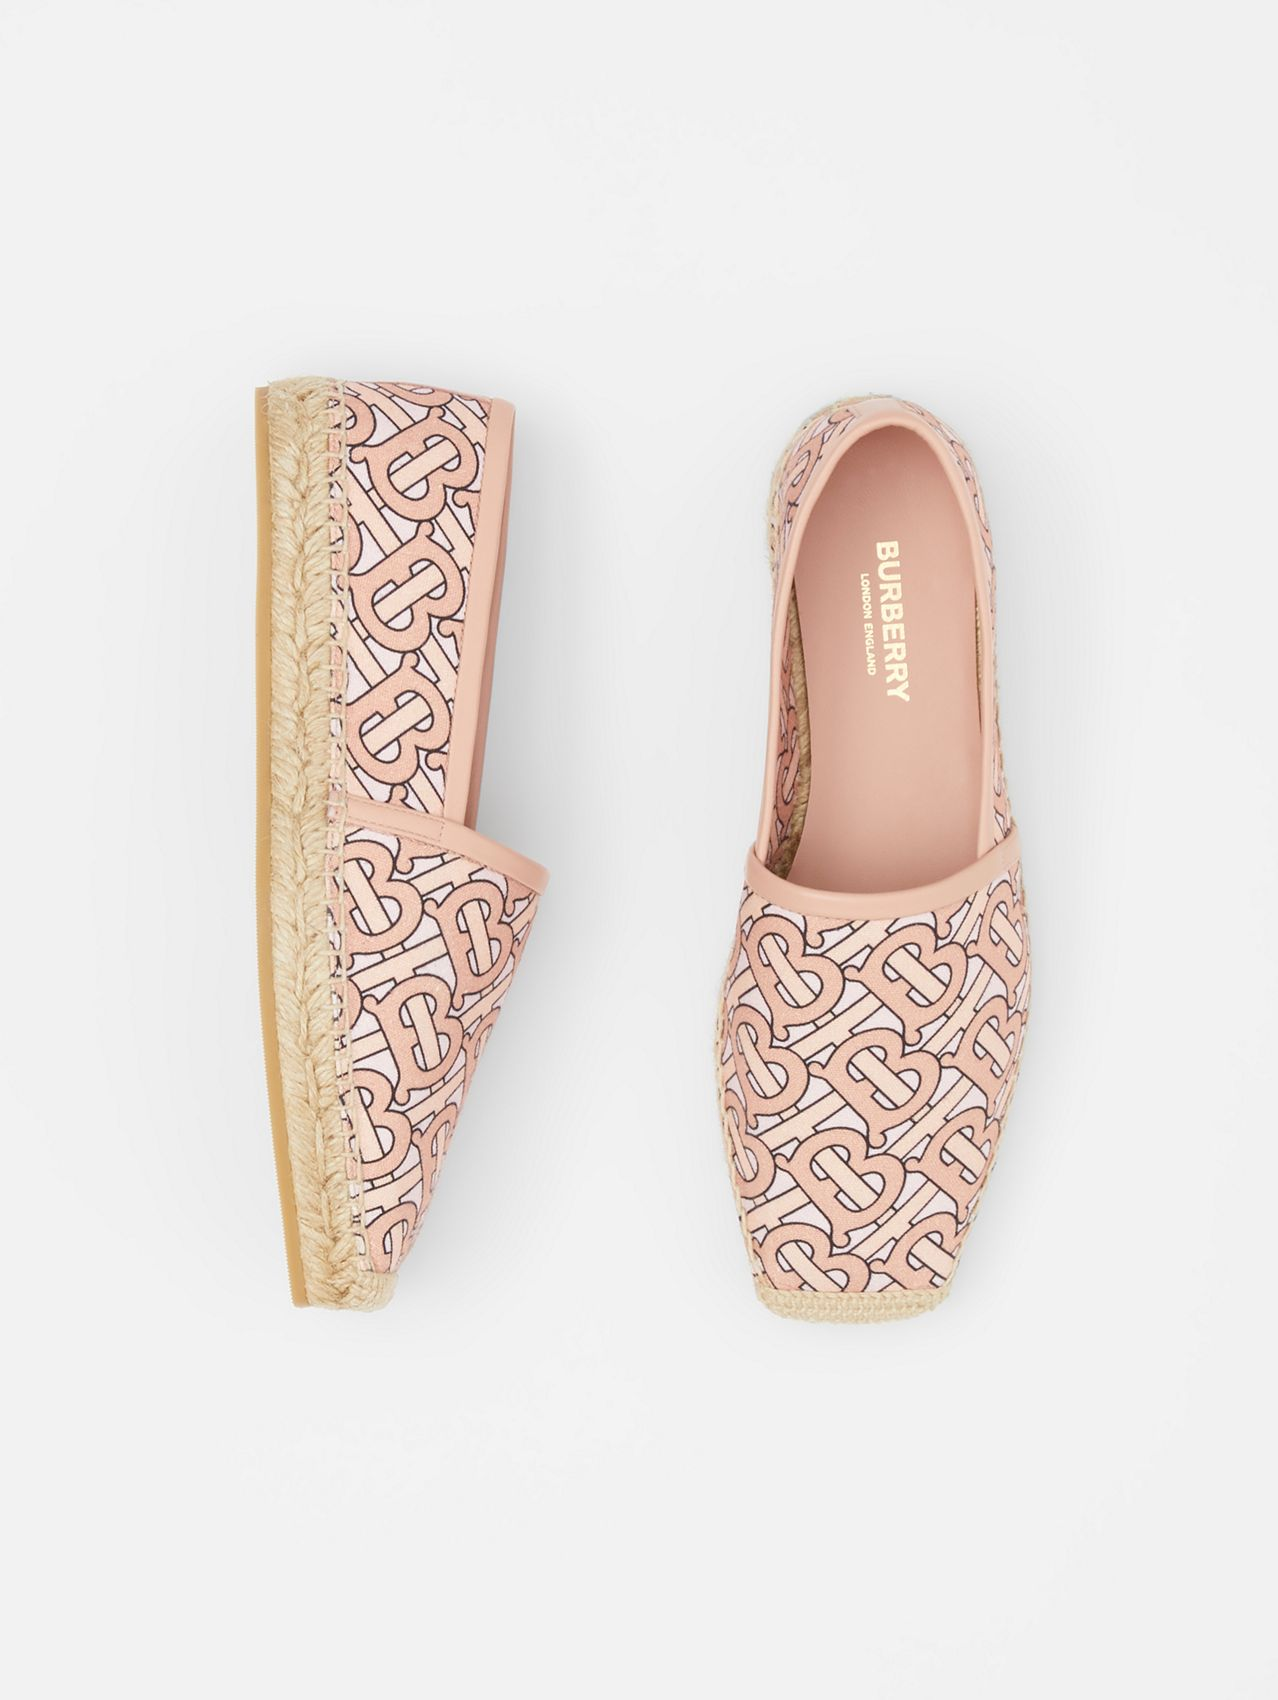 Monogram Print Cotton Canvas Espadrilles in Pale Copper Pink